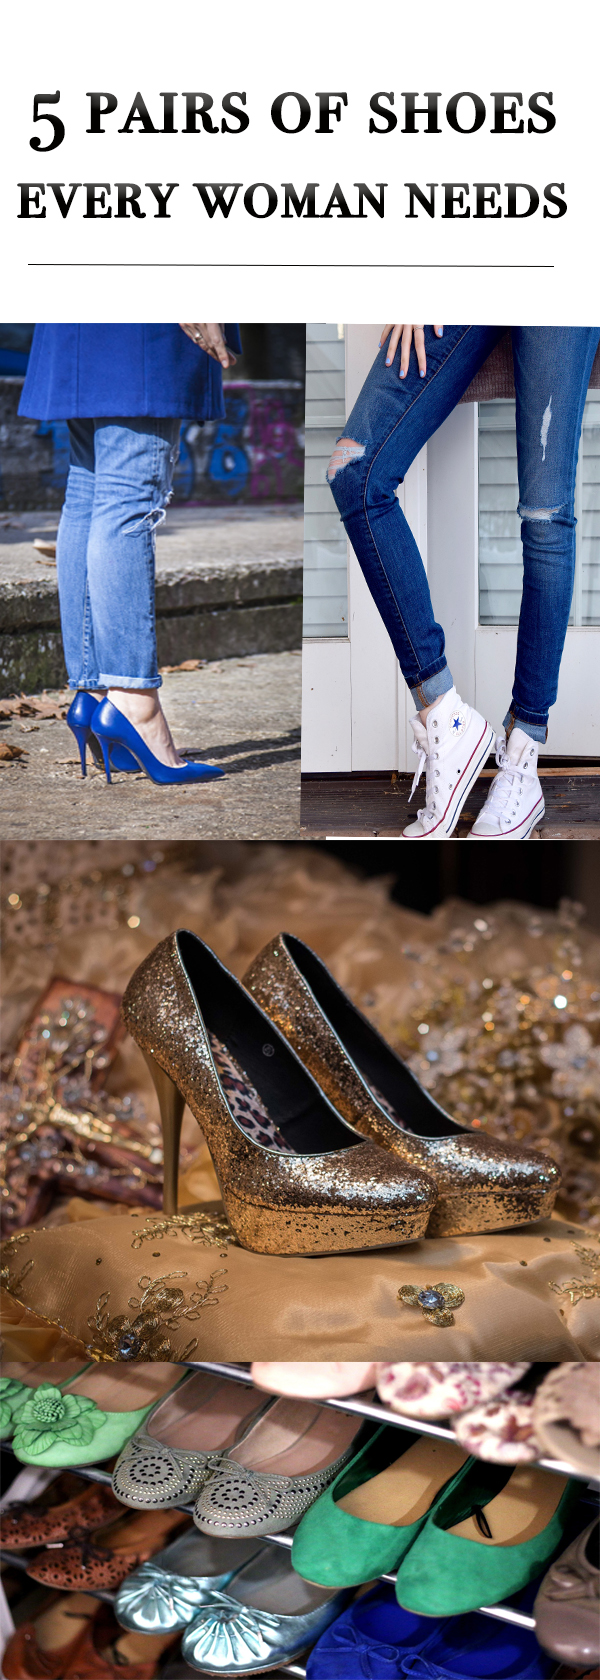 5-pairs-shoes-every-woman-needs